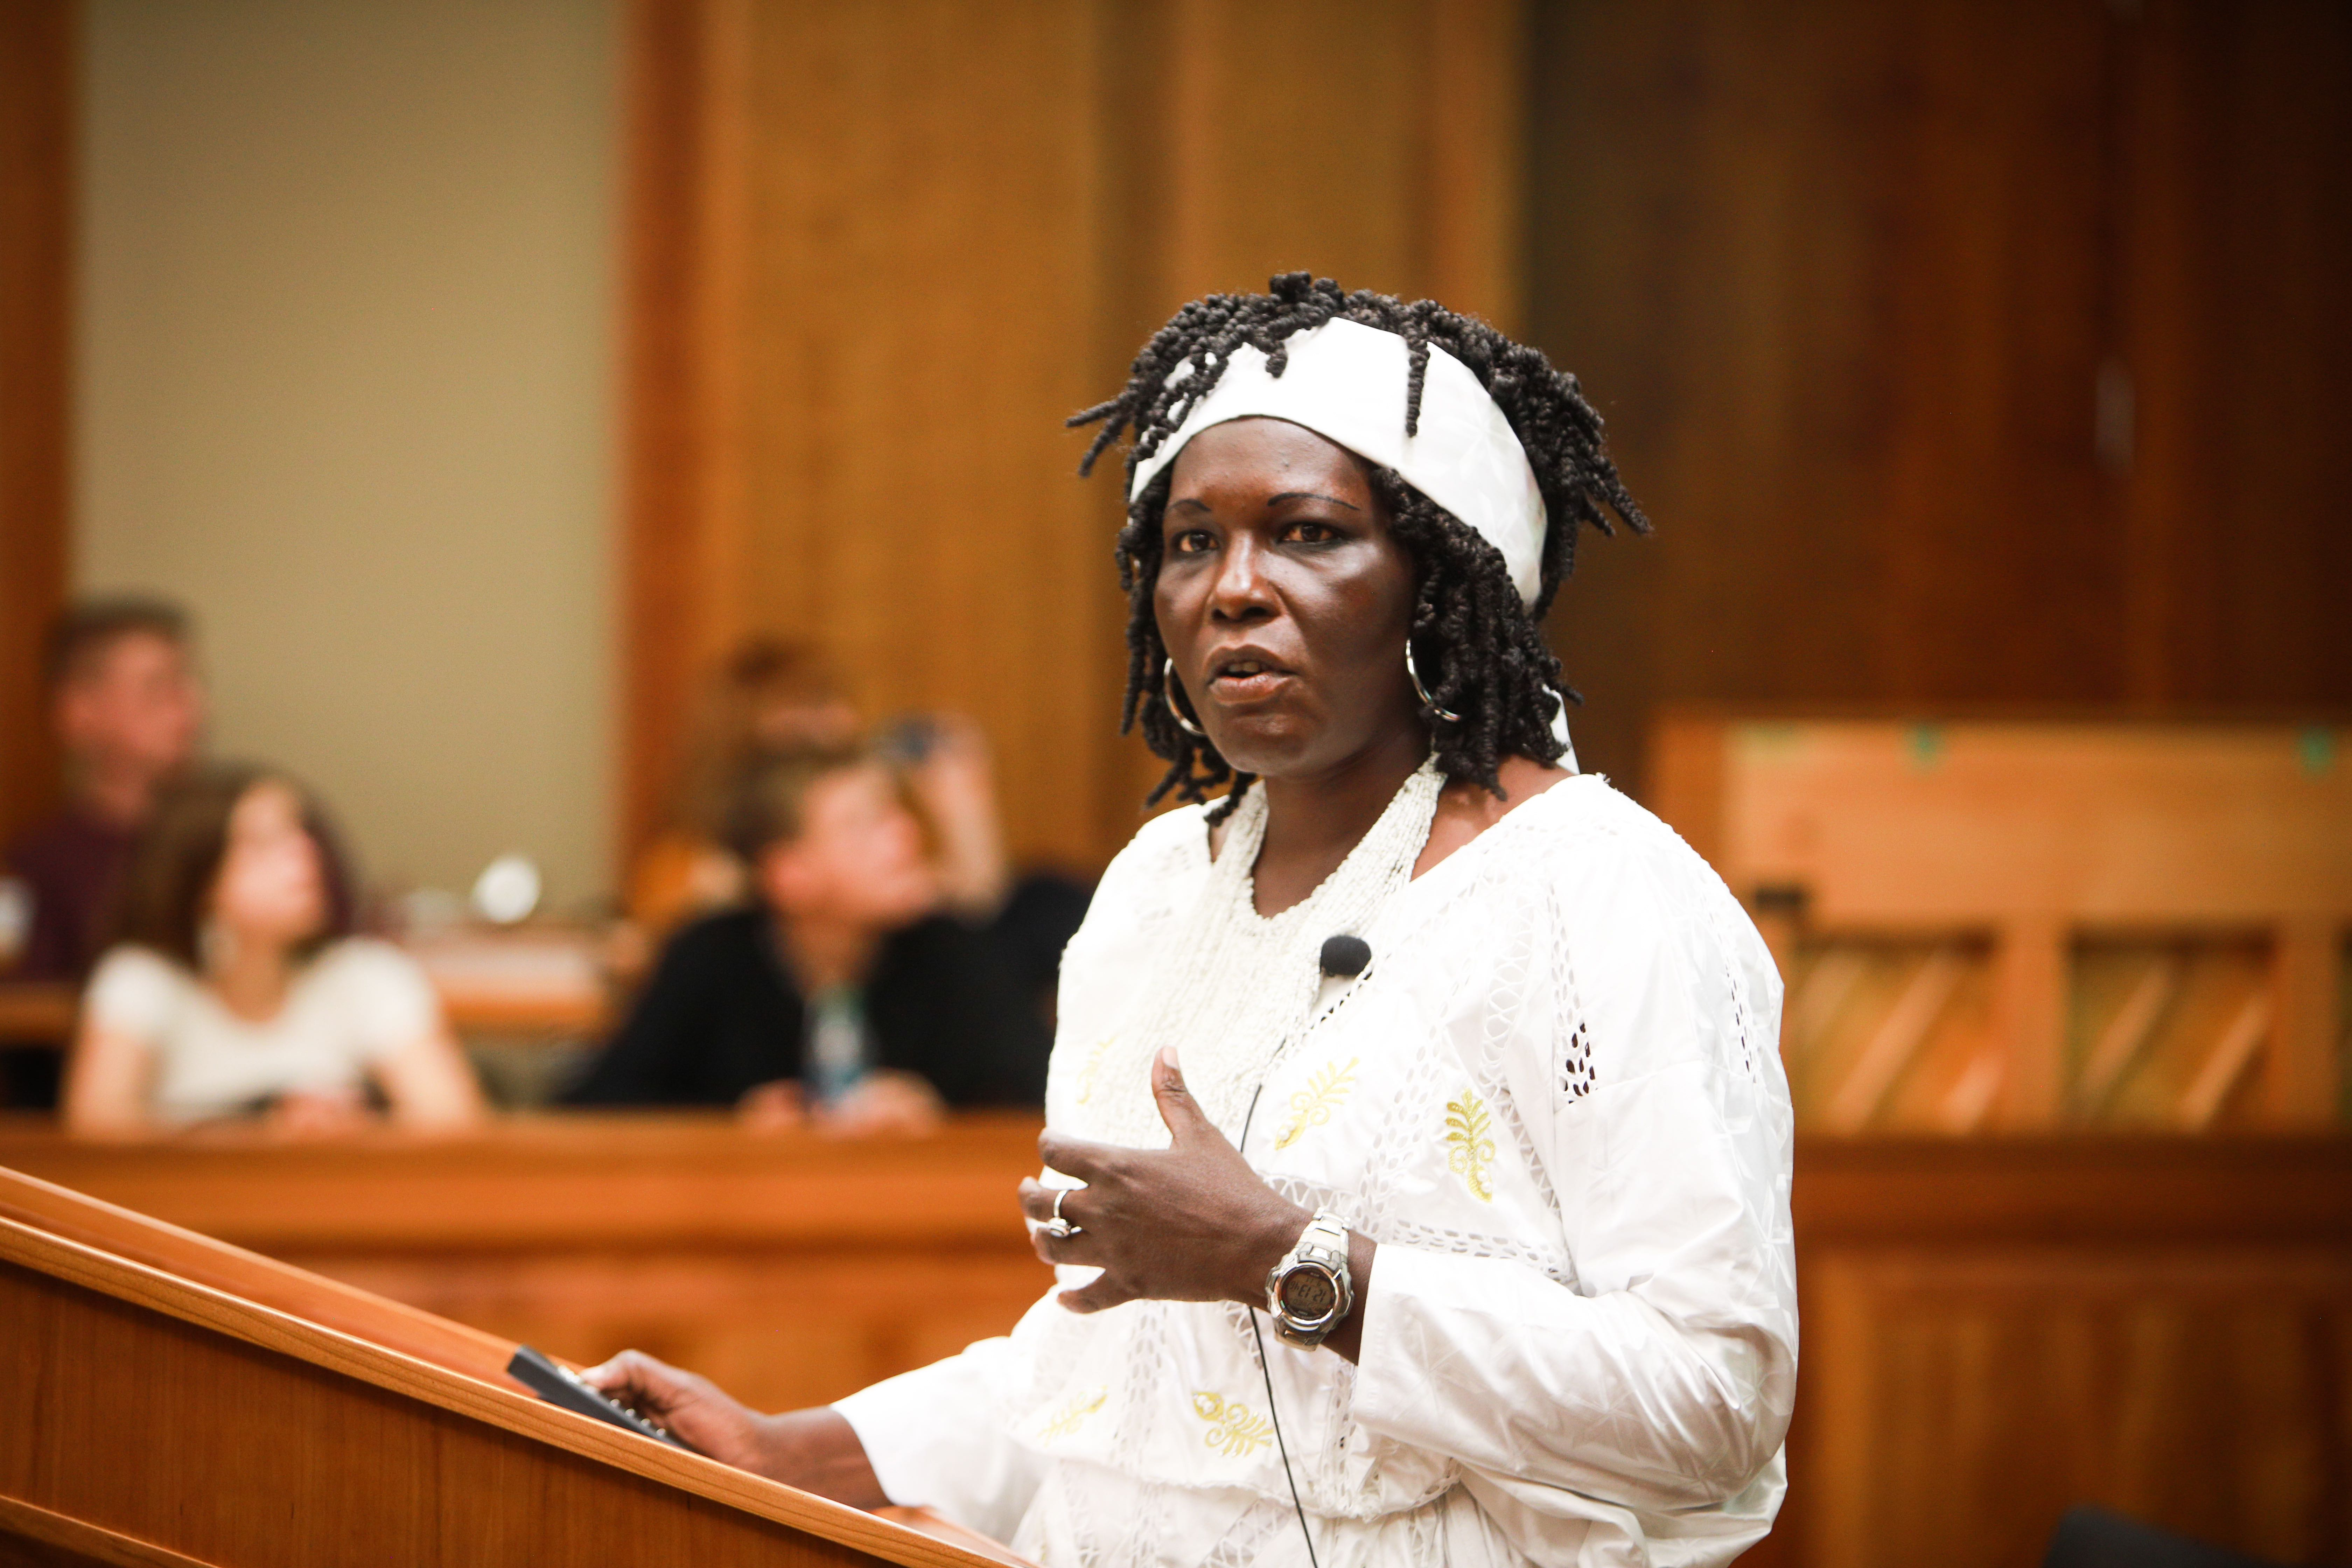 Sudan native Karak Miakol speaks at the BYU Law School on Sept. 11, 2019, after she was awarded BYU's Center for Conflict Resolution Peacemaker Award.